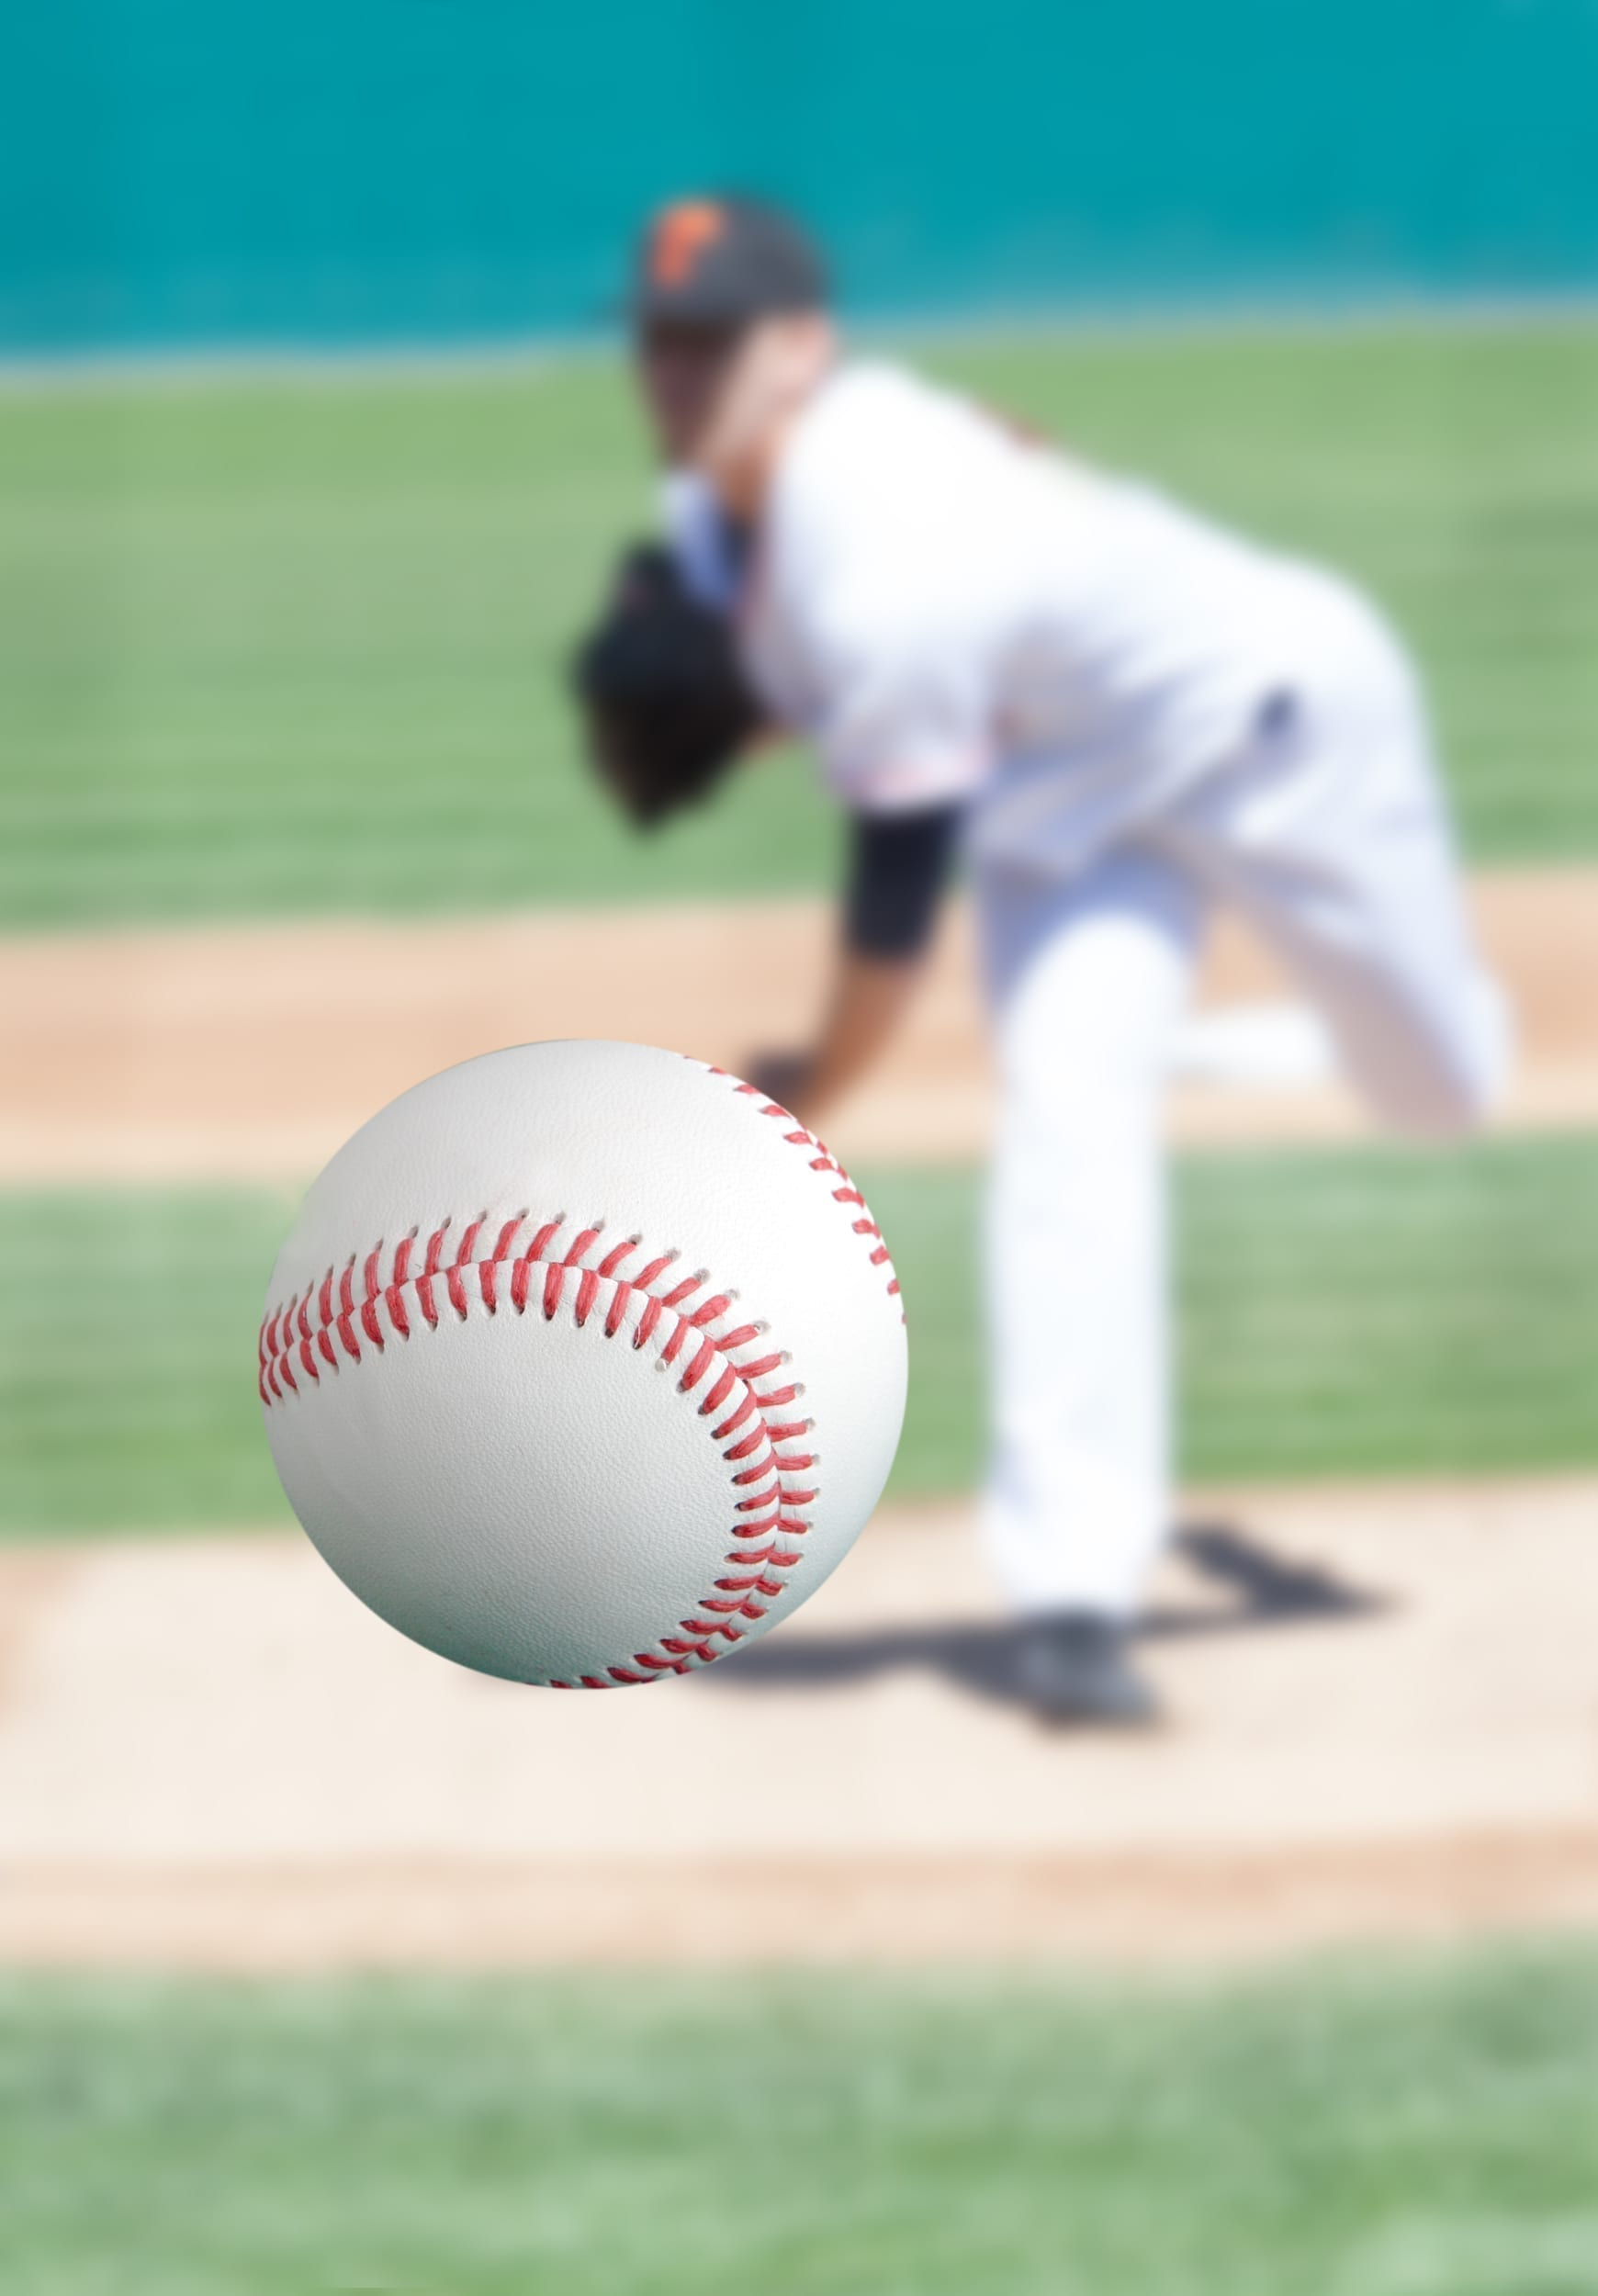 Evaluation of Hip Internal and External Rotation Range of Motion as an Injury Risk Factor for Hip, Abdominal and Groin Injuries in Professional Baseball Players